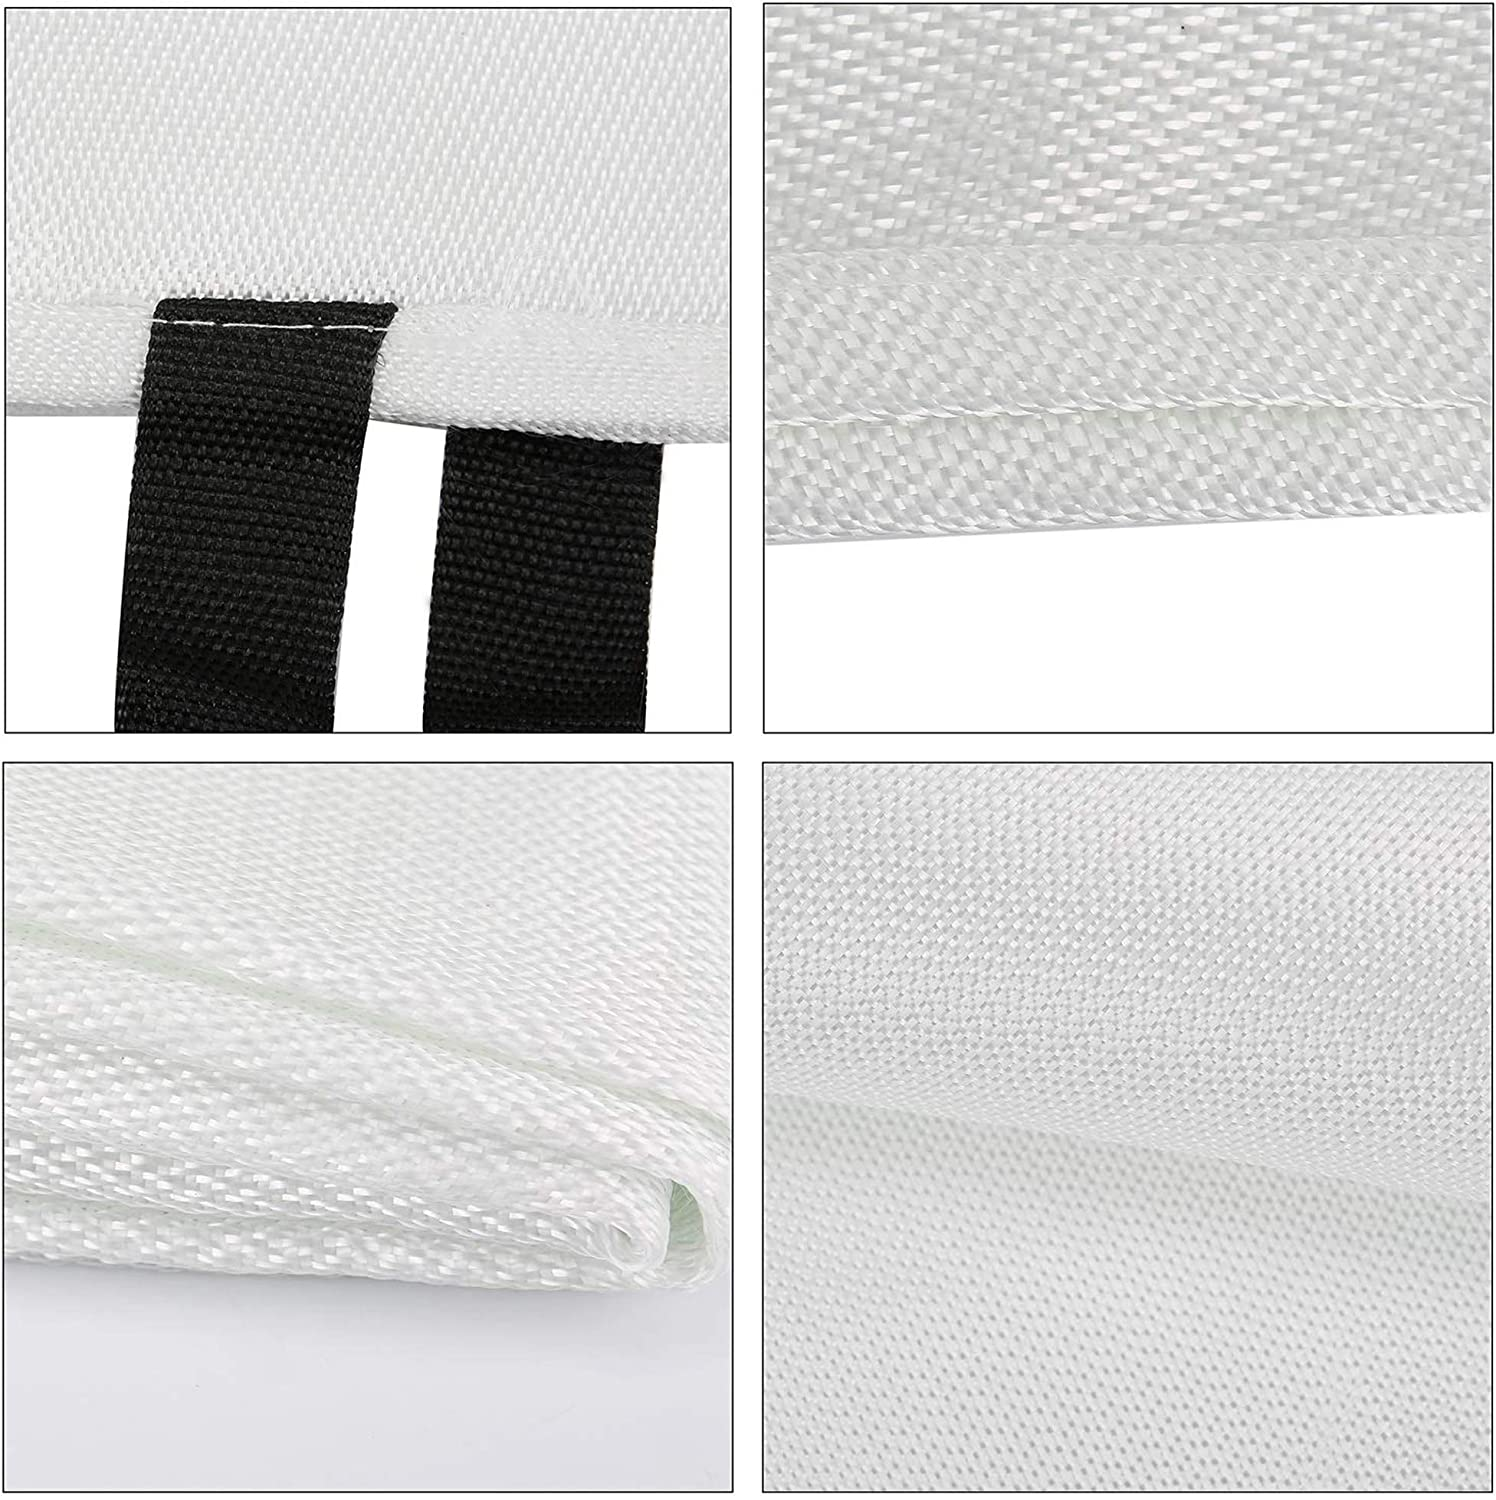 Flame Retardant Protection and Heat Insulation Designed for Kitchen,Fireplace,Grill,Car,Camping TONYKO Emergency Surival Fire Blanket White(10PACK)